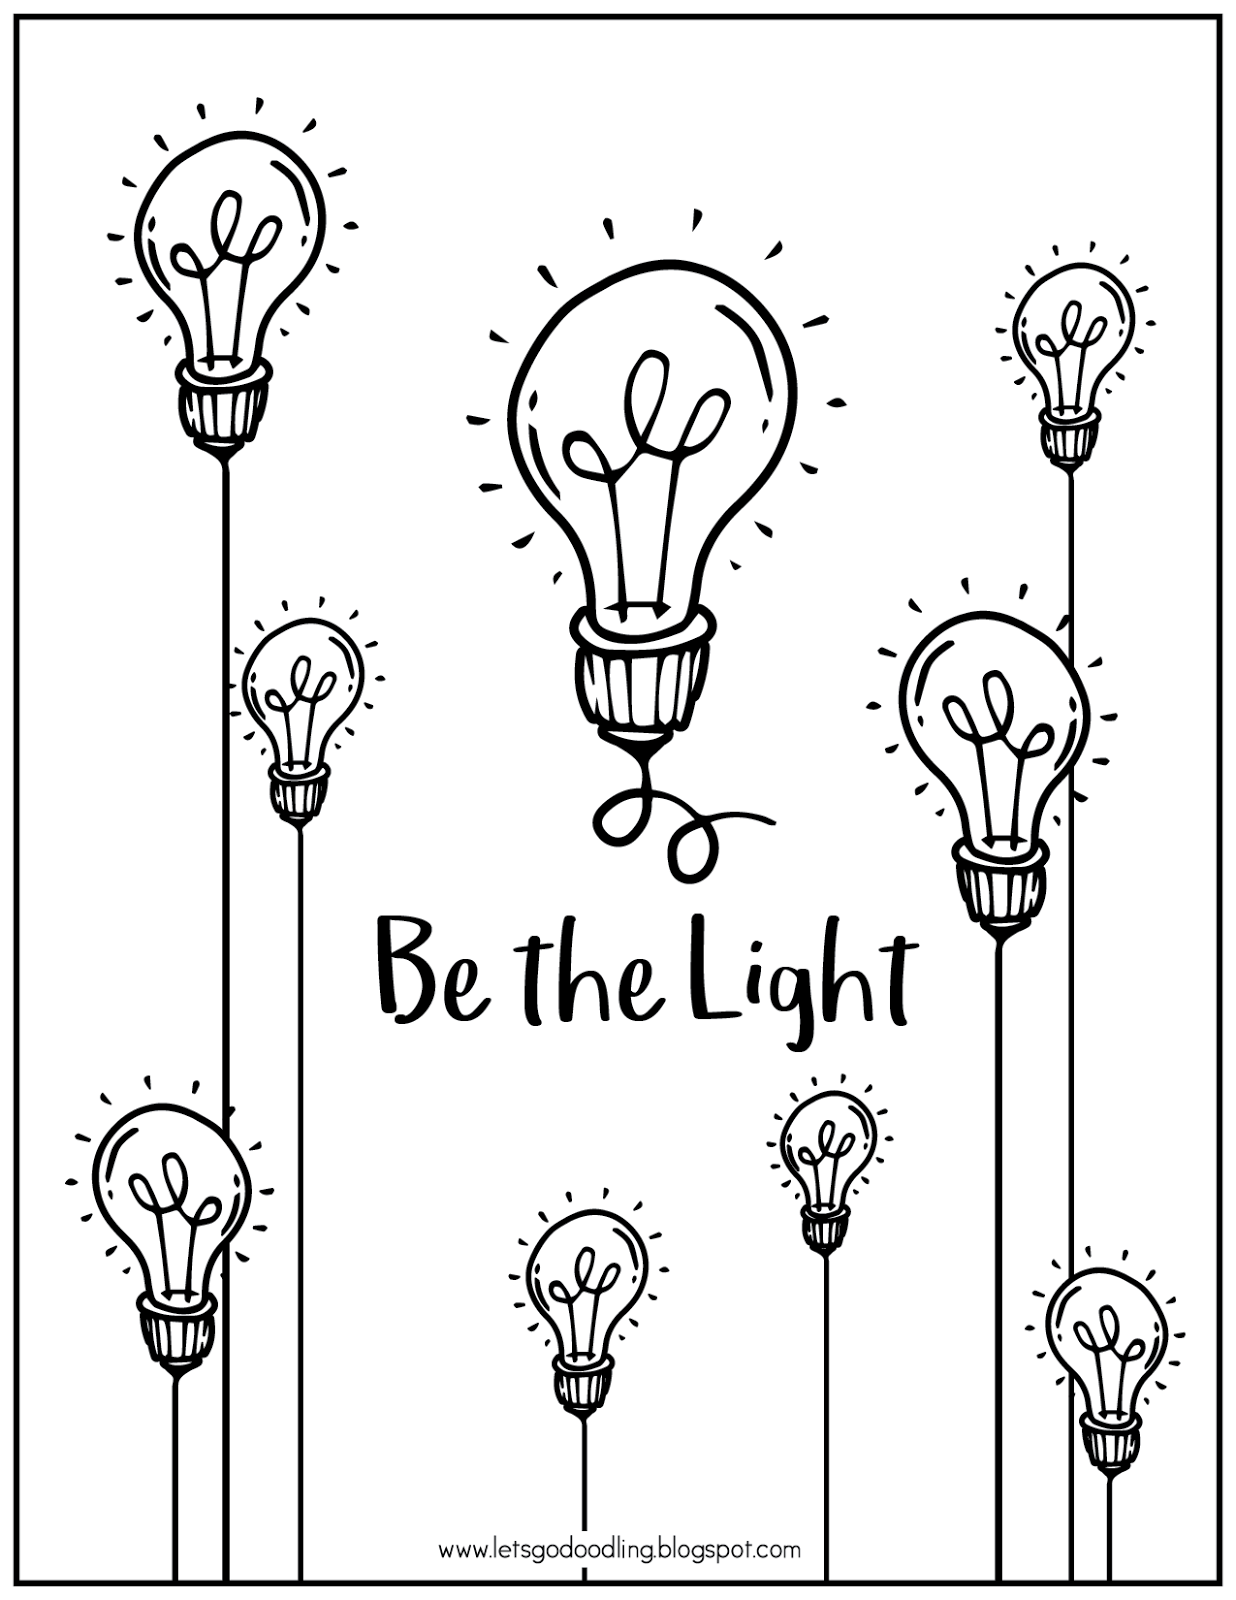 This is an image of Simplicity Light Bulb Printable